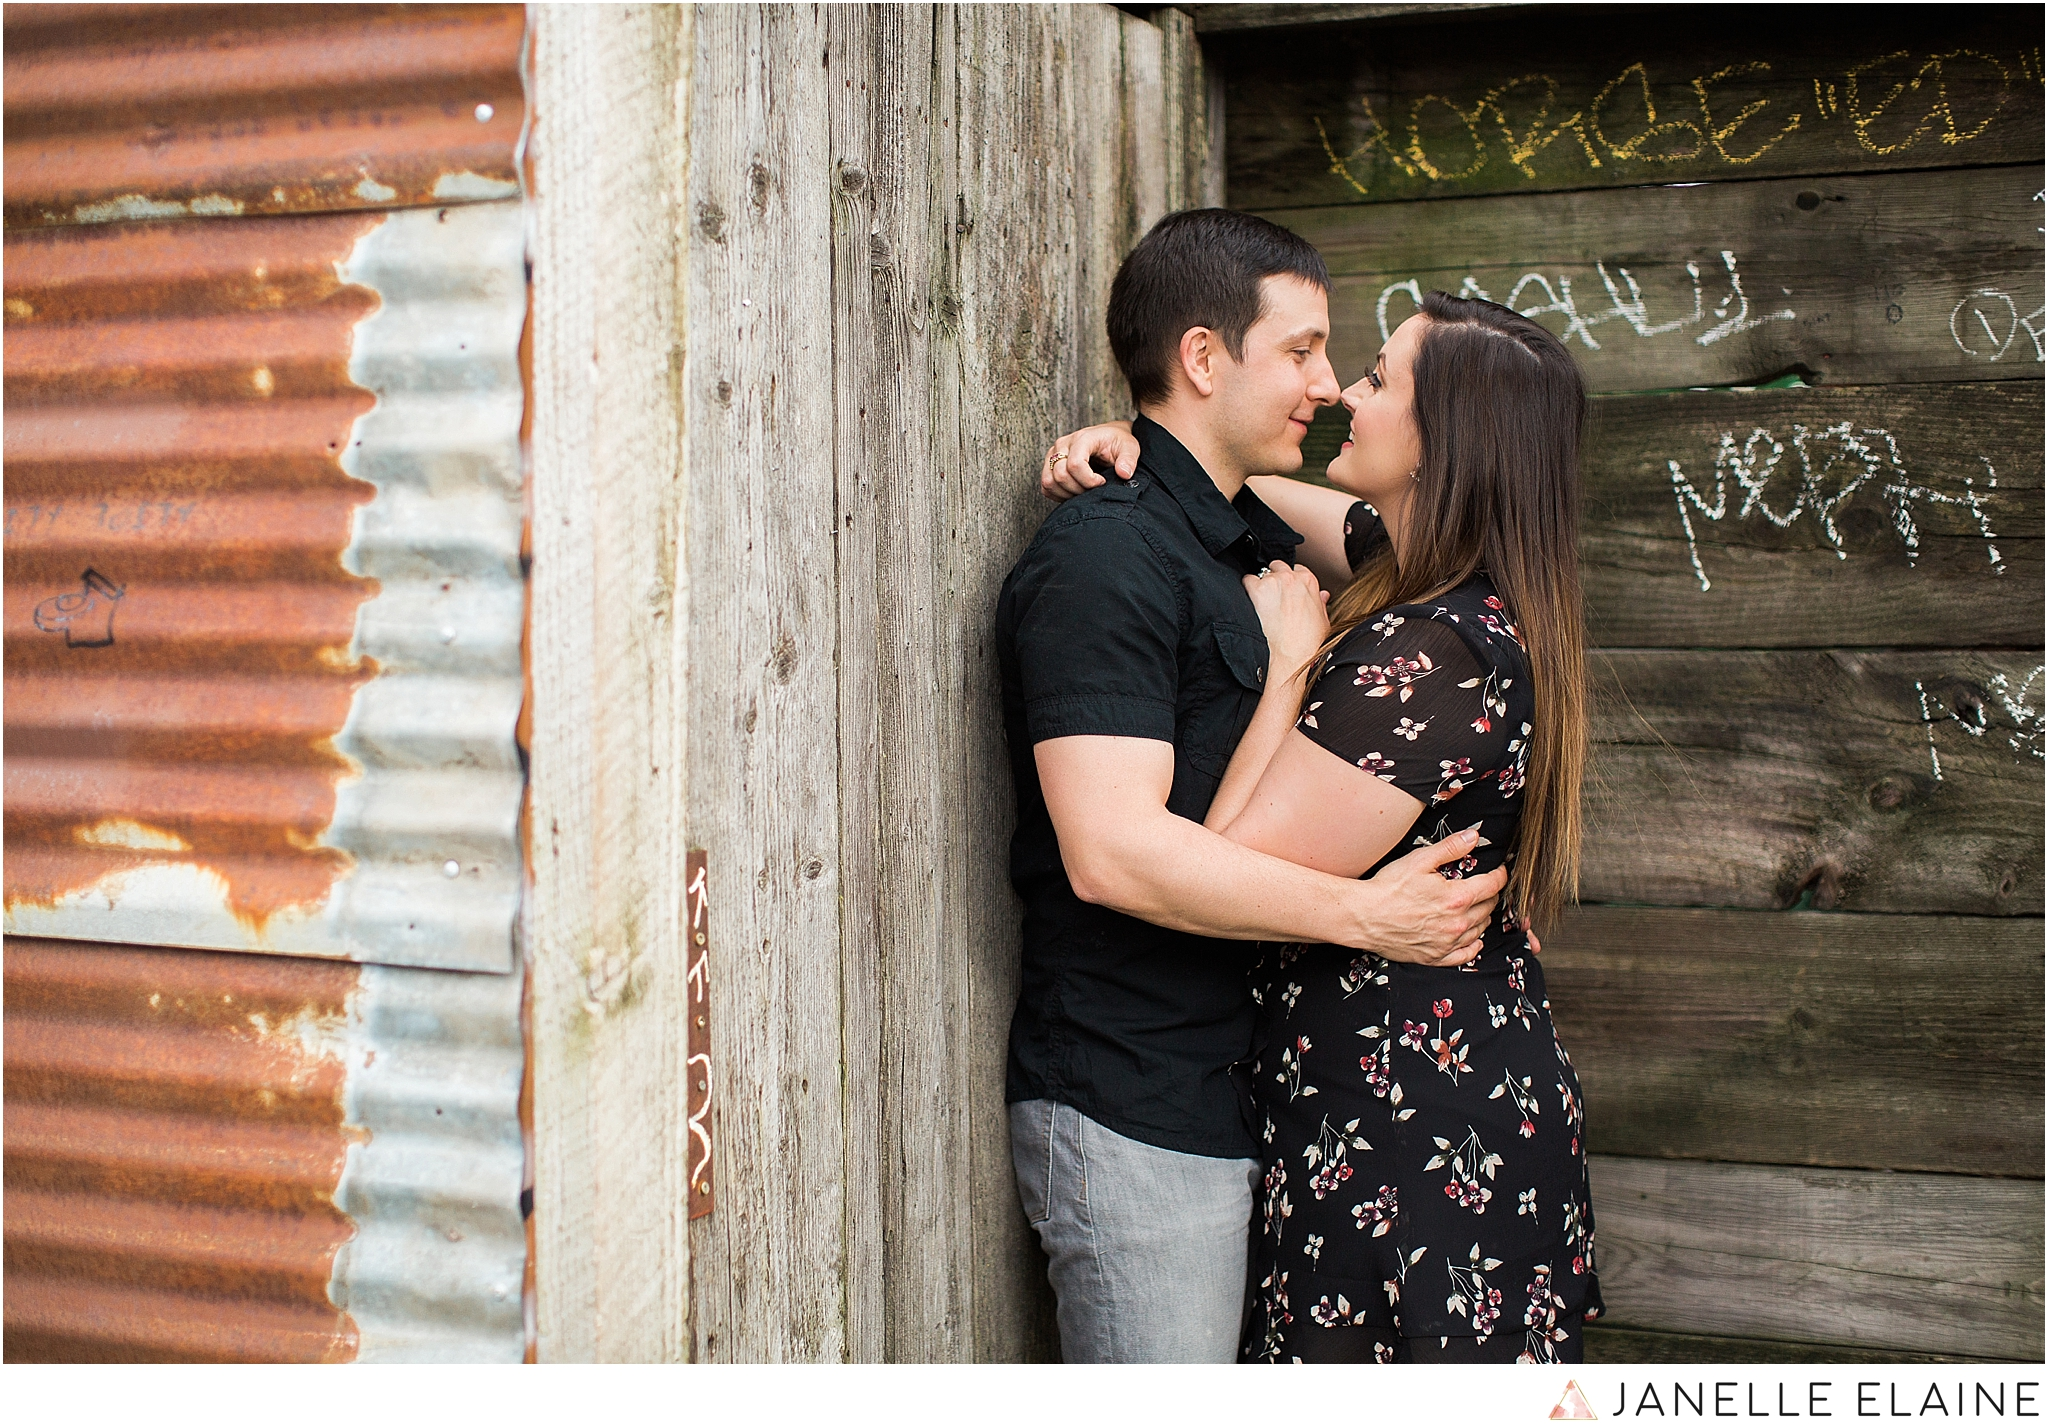 karen ethan-georgetown engagement photos-seattle-janelle elaine photography-45.jpg